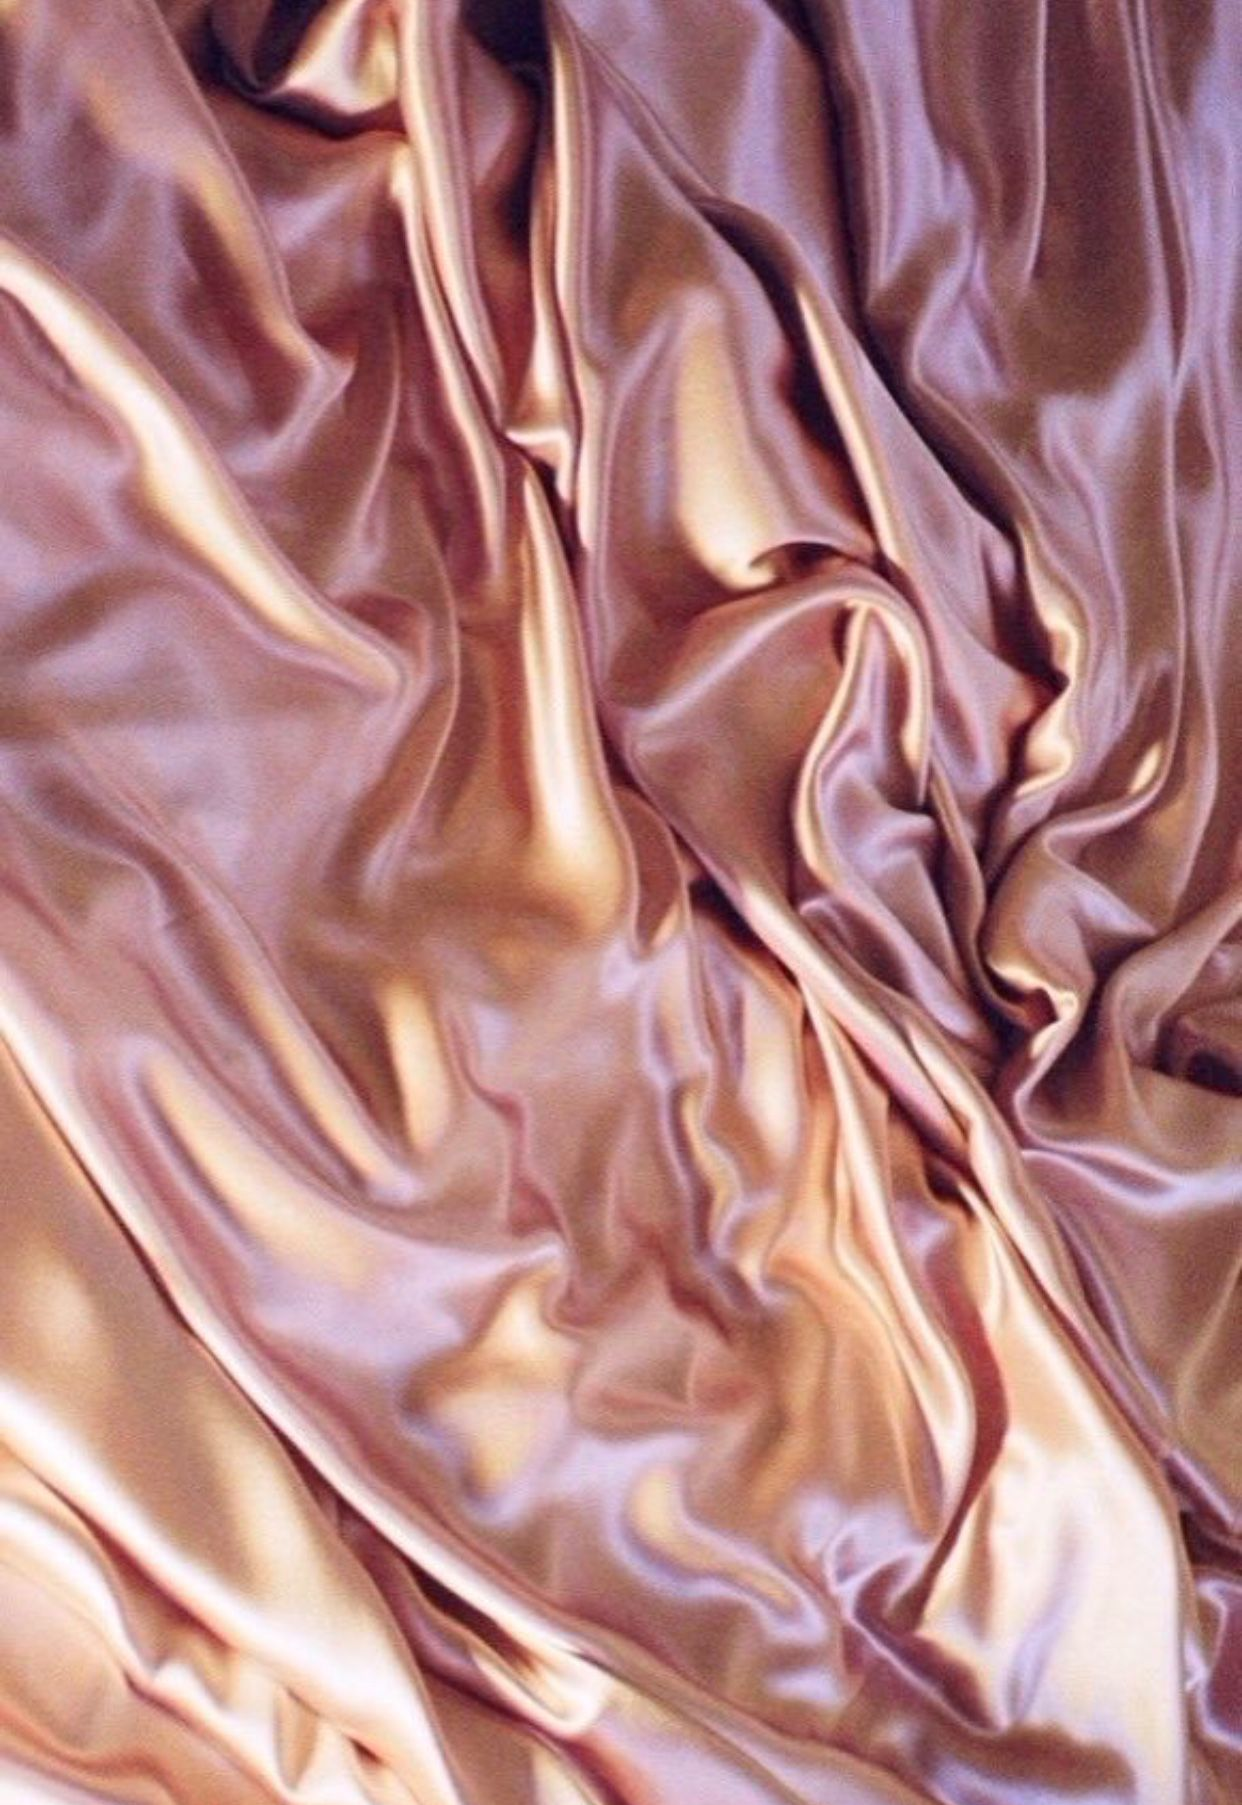 Pin By Rae On Photographie Rose Gold Wallpaper Gold Wallpaper